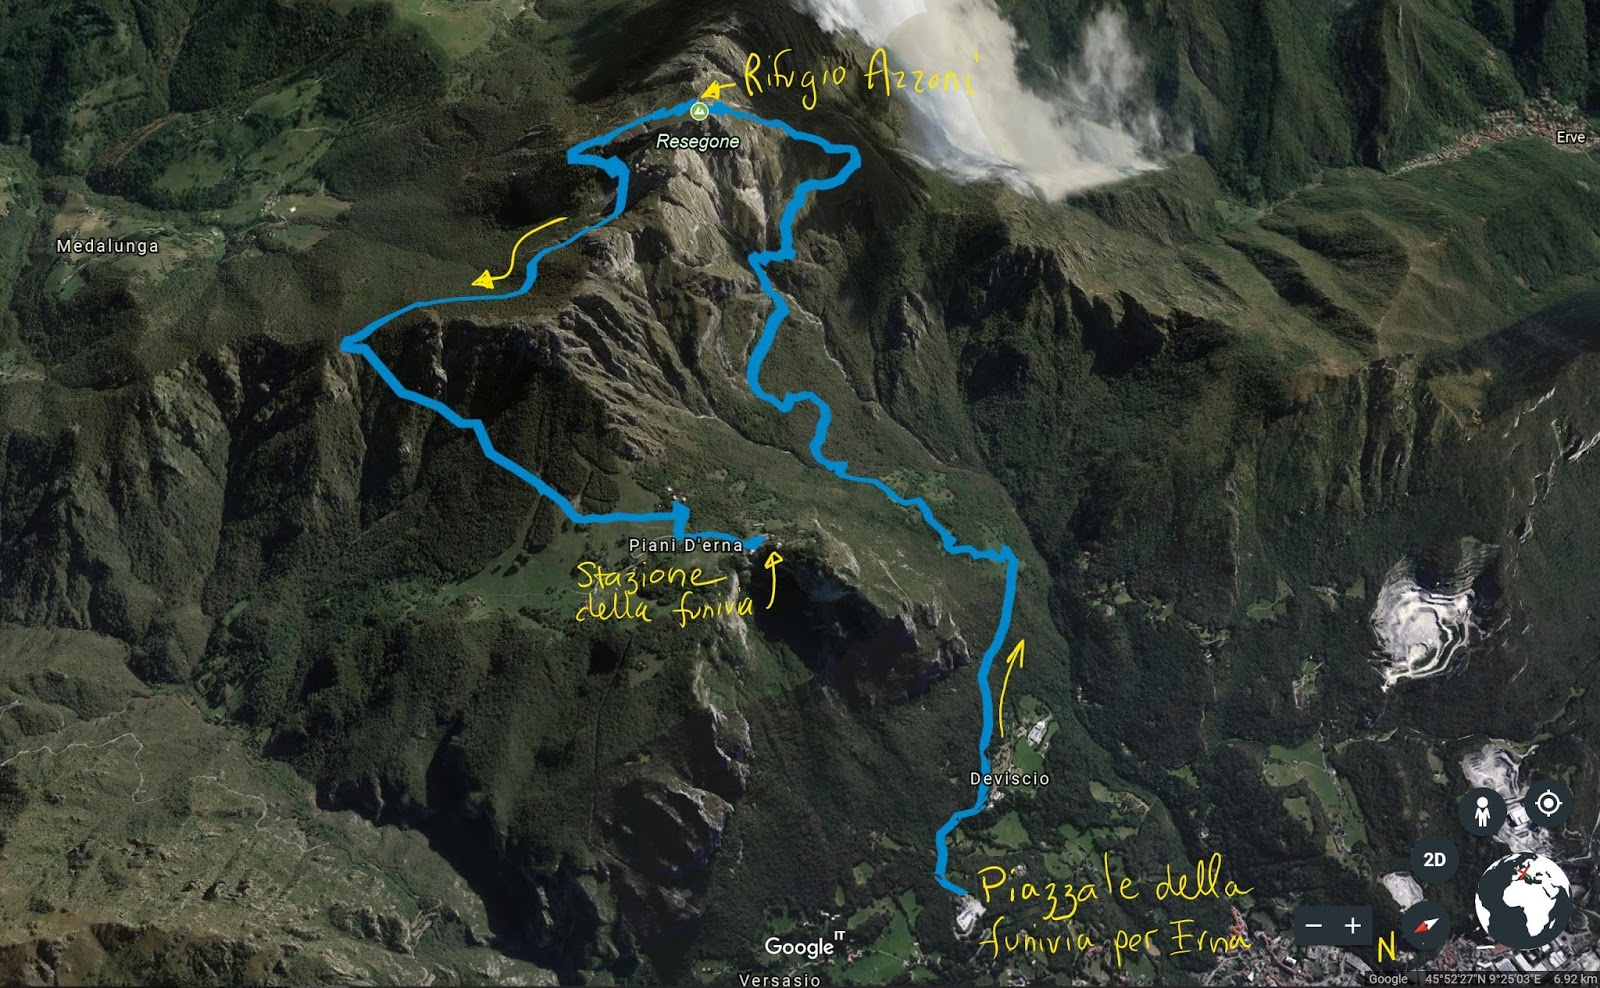 Hiking Resegone from Lecco